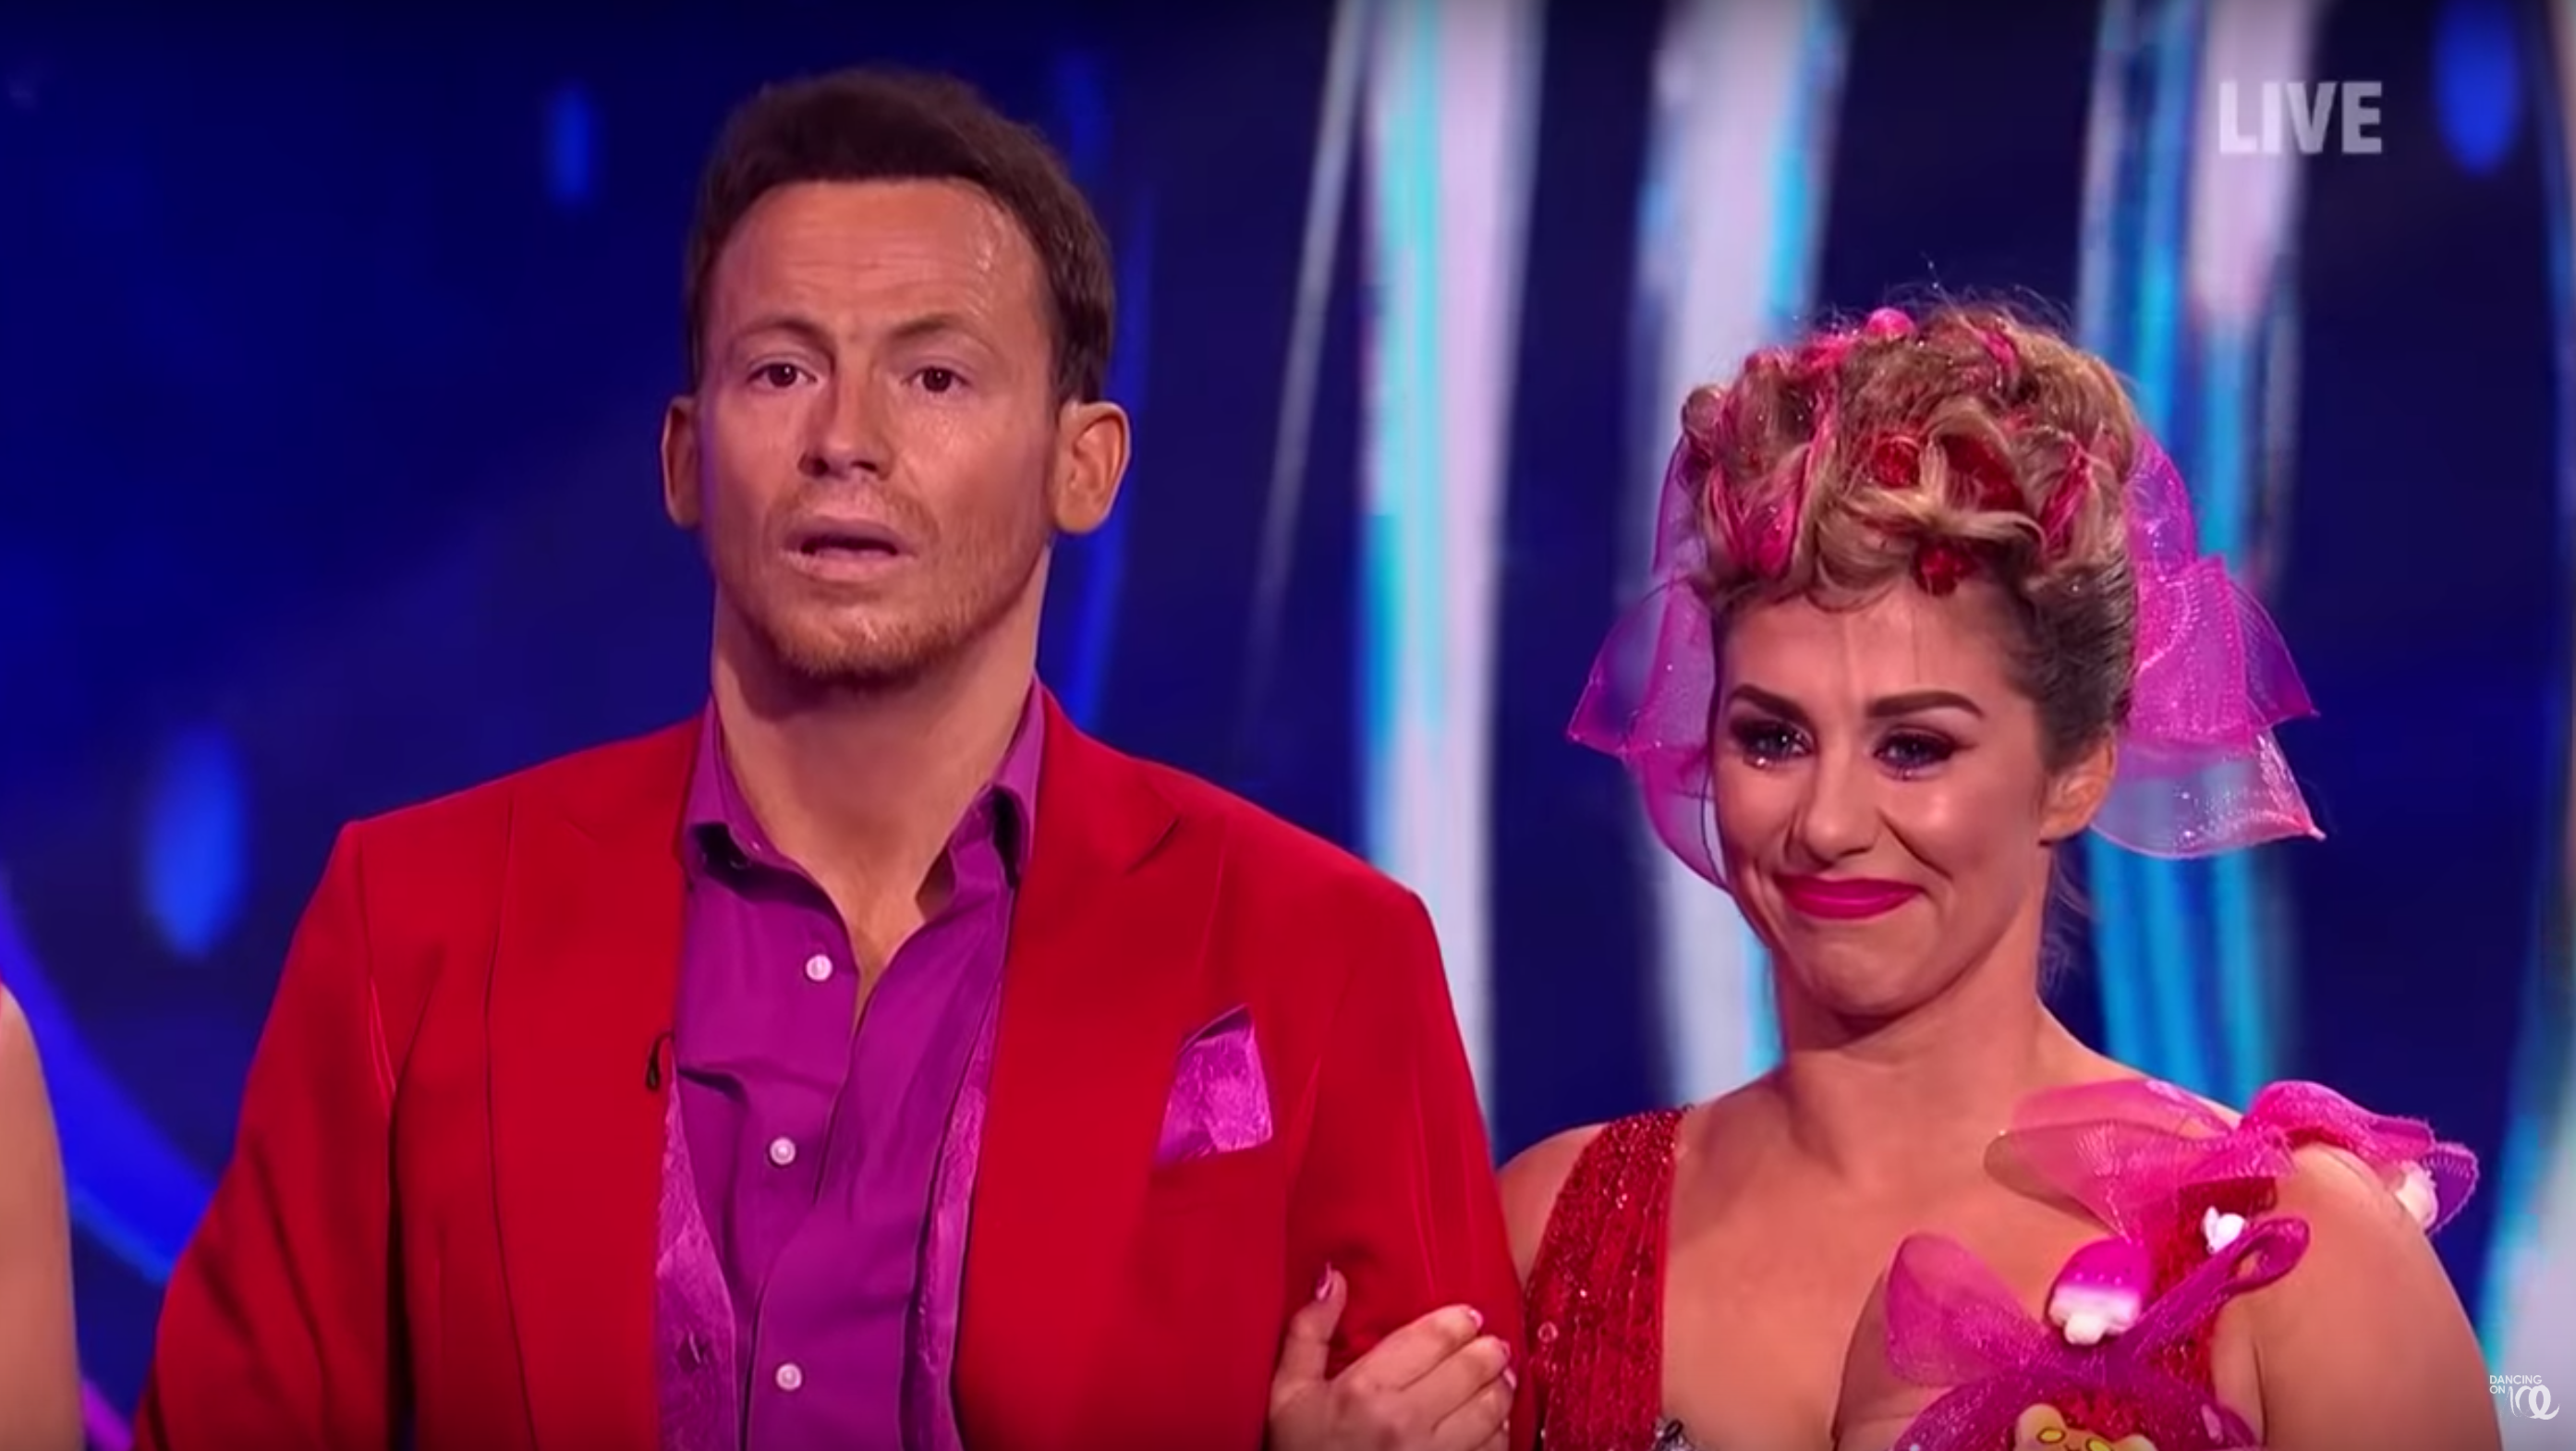 Joe Swash says brutally tough Dancing On Ice rehearsals have pushed him 'to breaking point'